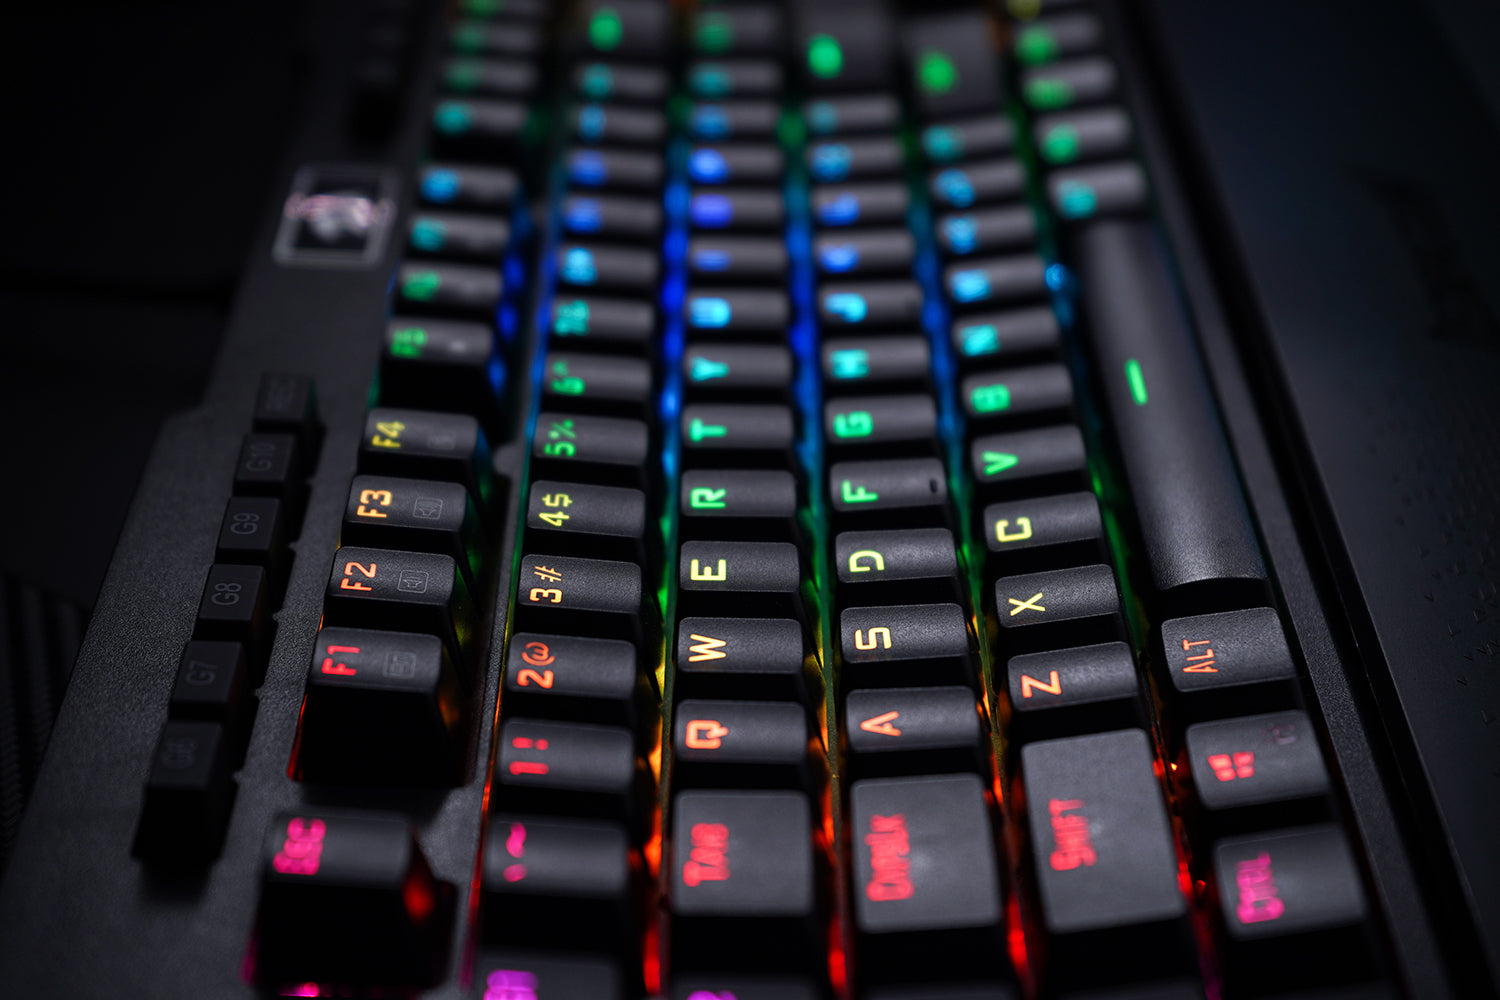 Redragon K586 Gaming Keyboard 16.8 Million RGB backlights with 18 modes